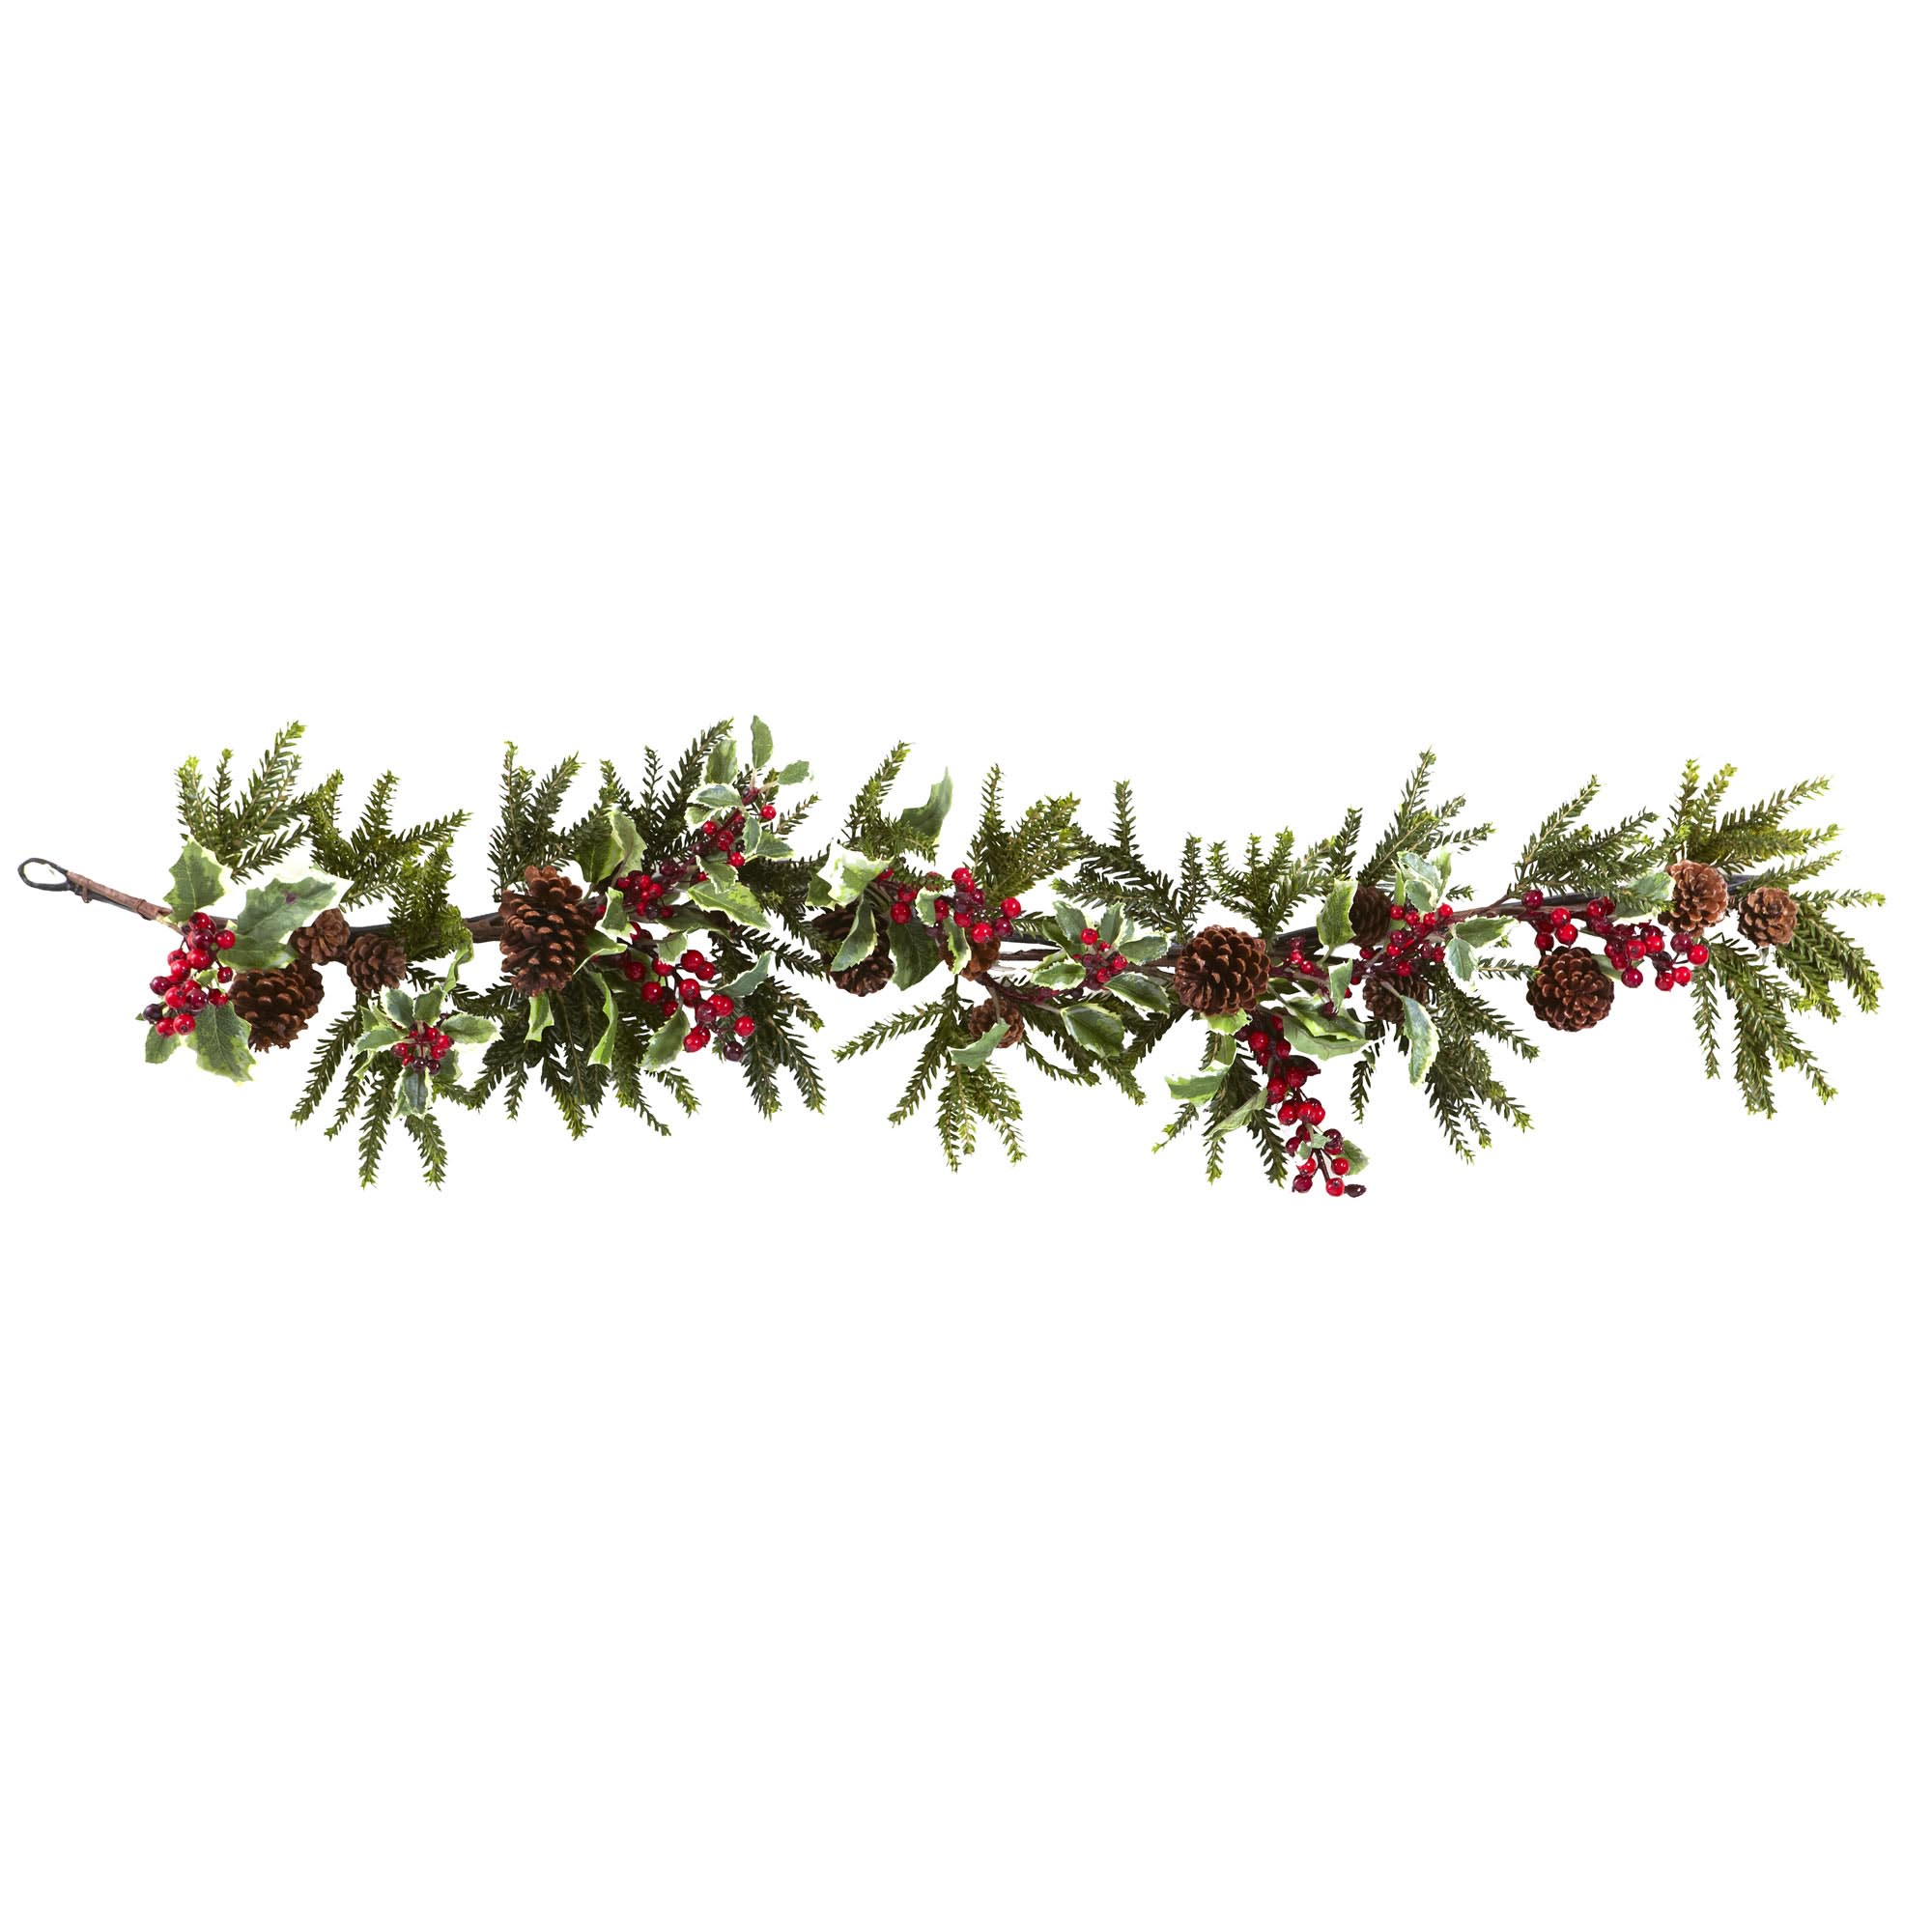 54 inch artificial holly berry garland - Christmas Garland